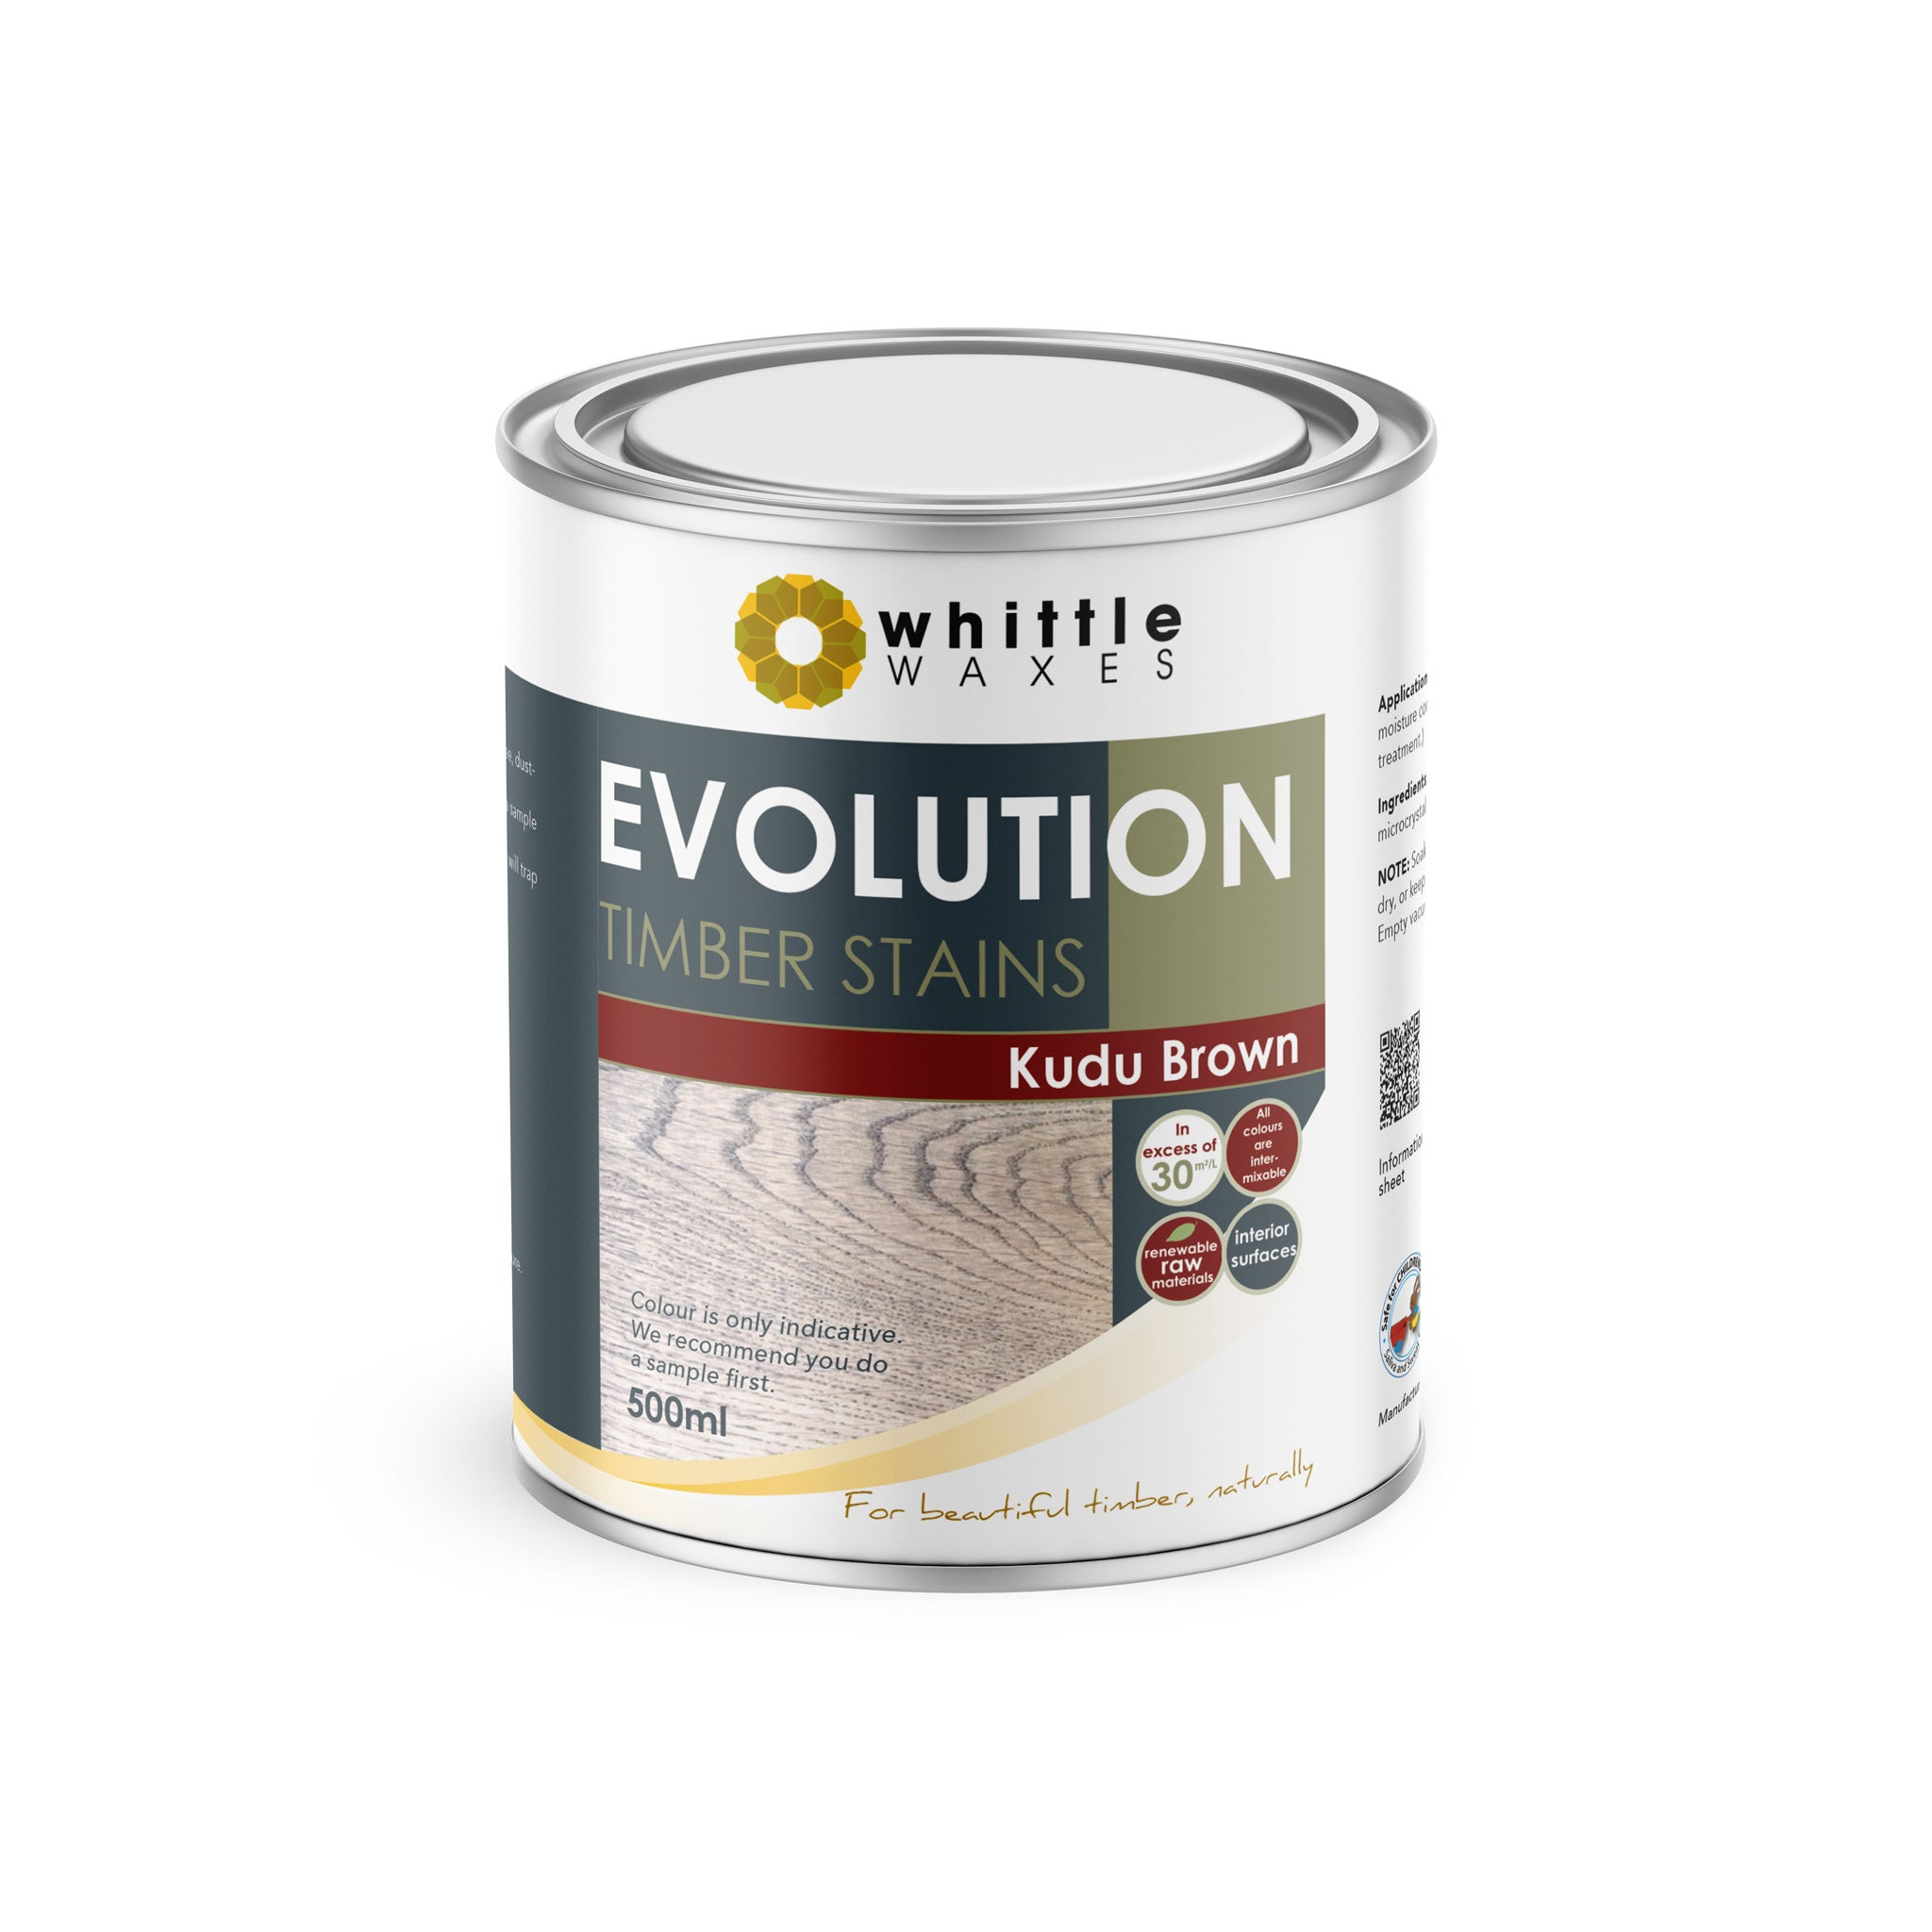 Whittle Waxes Evolution Colours (Kudu Brown) - quality timber stain - 500ml